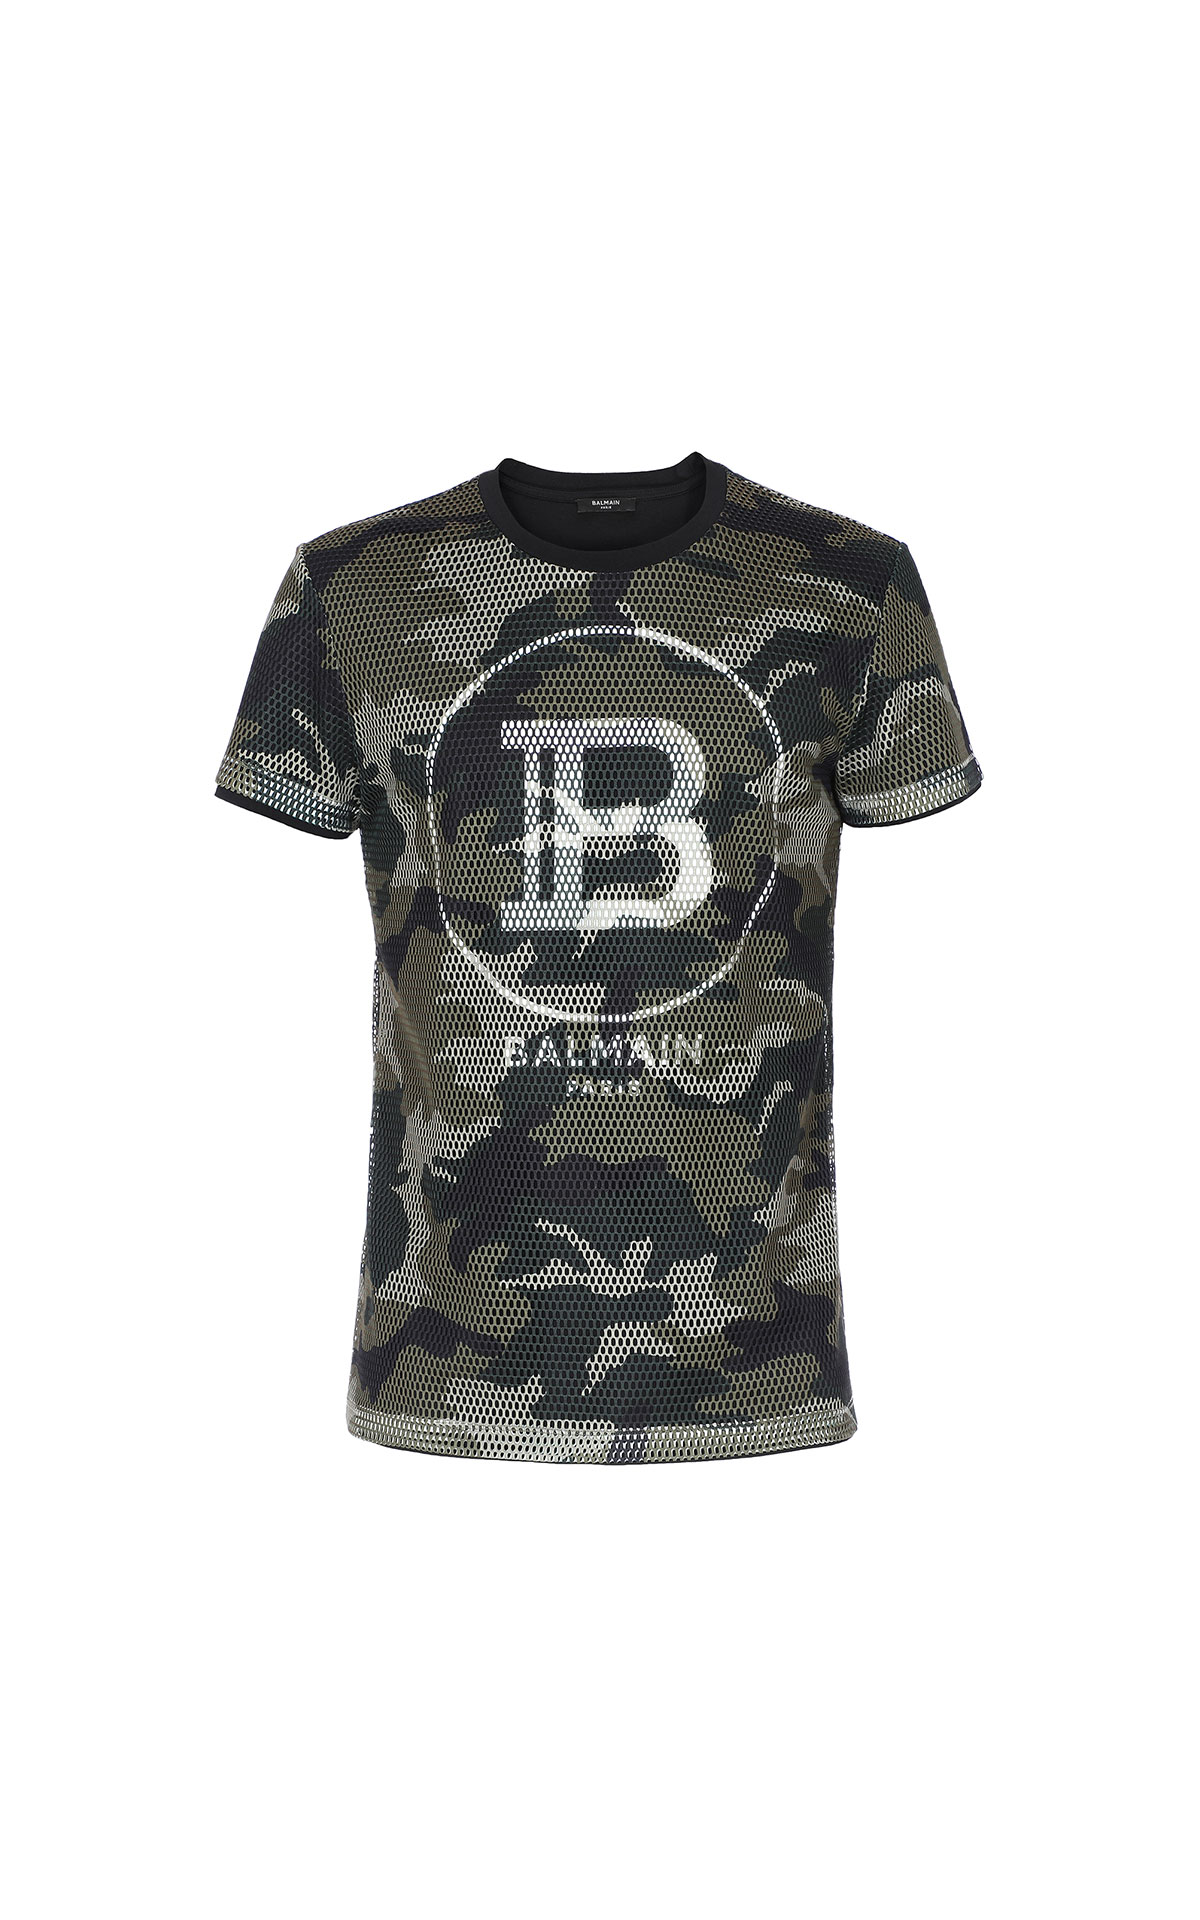 Balmain Camouflage mesh t-shirt from Bicester Village